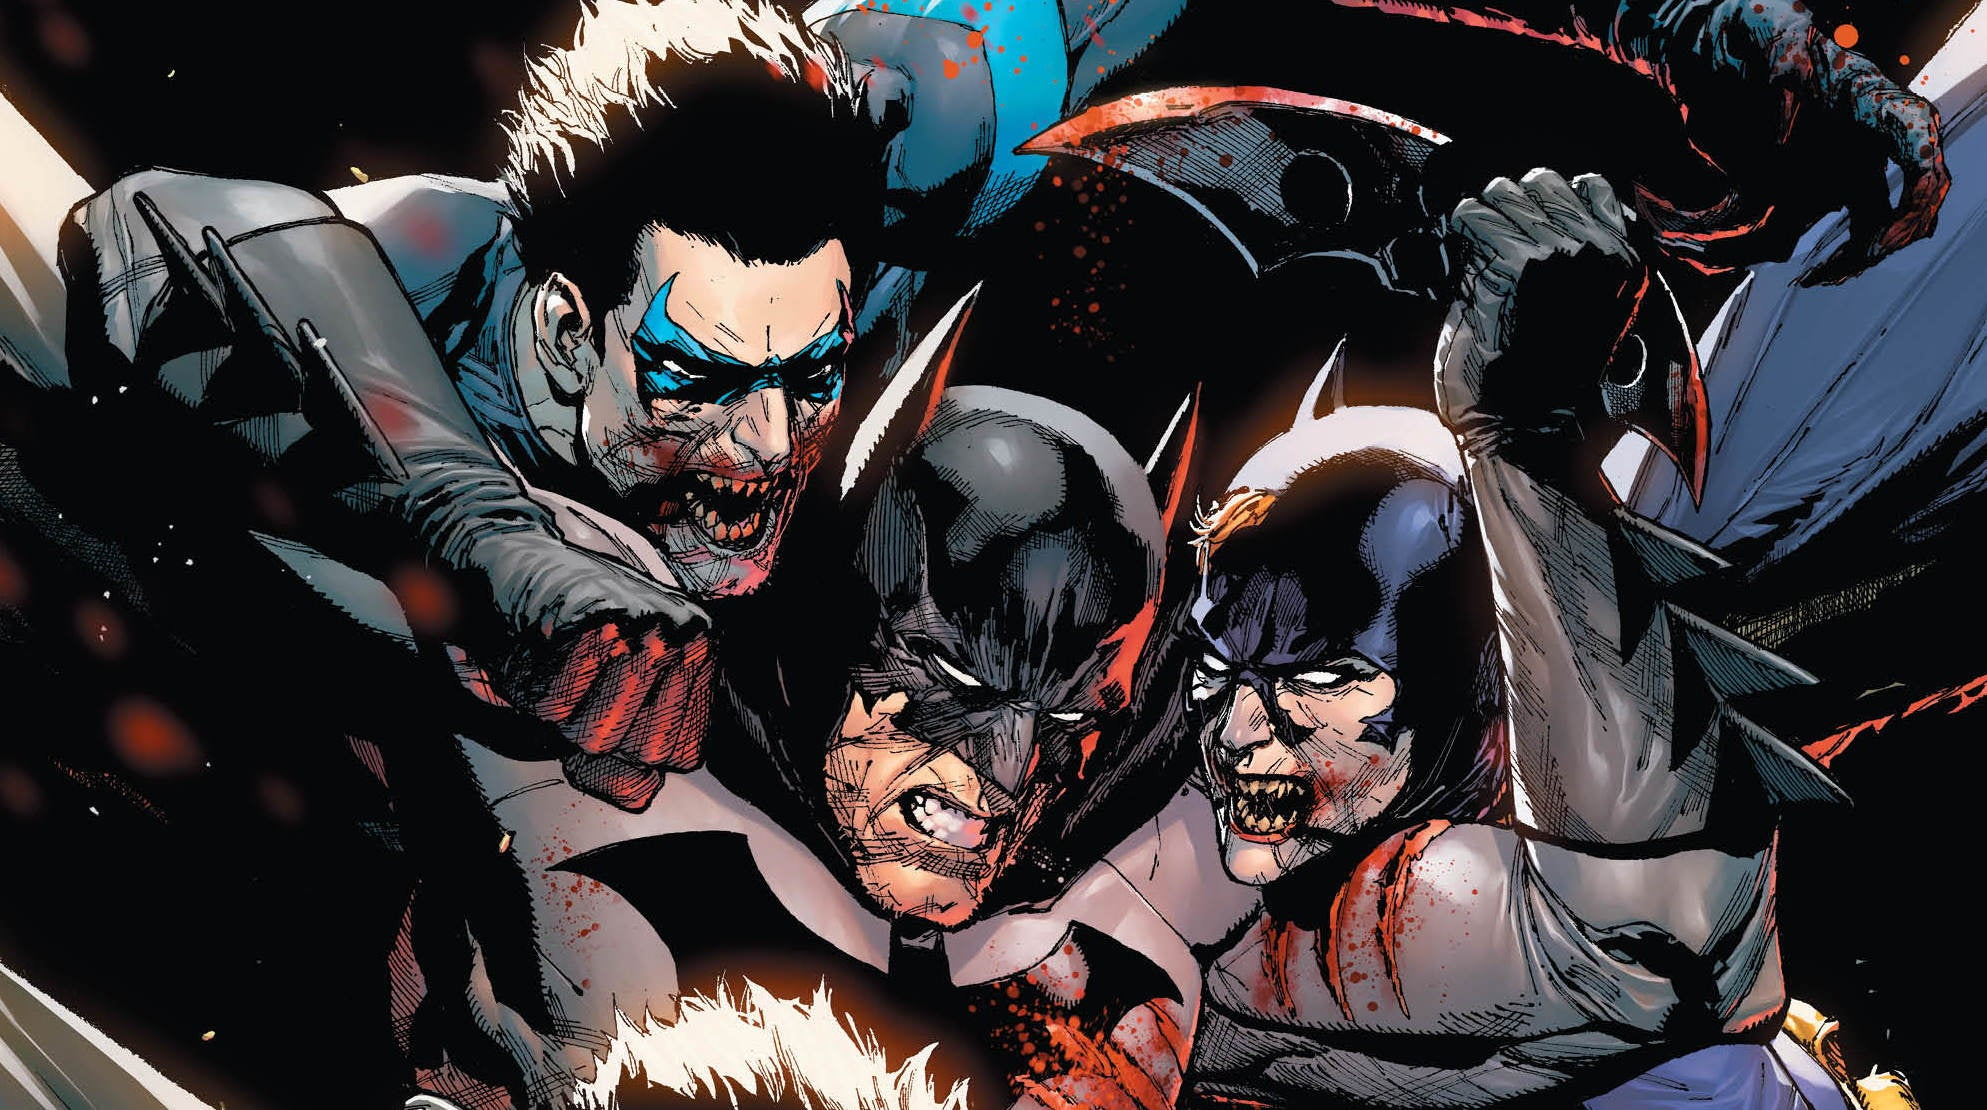 Exclusive: The Global Forecast Calls For Zombie Mayhem In This DCeased Preview